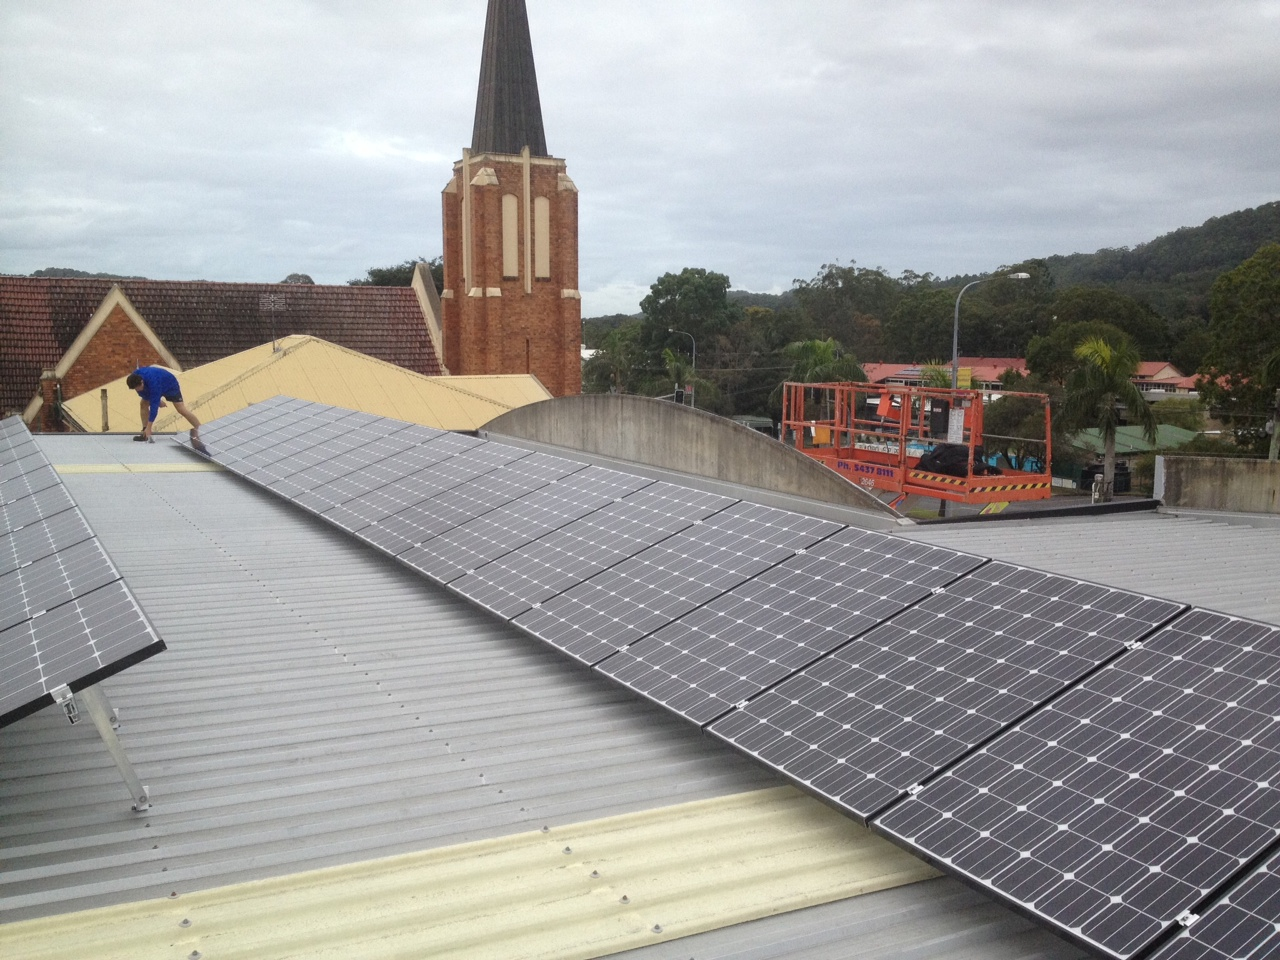 7.5 kW Brown's Autobahn, Nambour,Qld